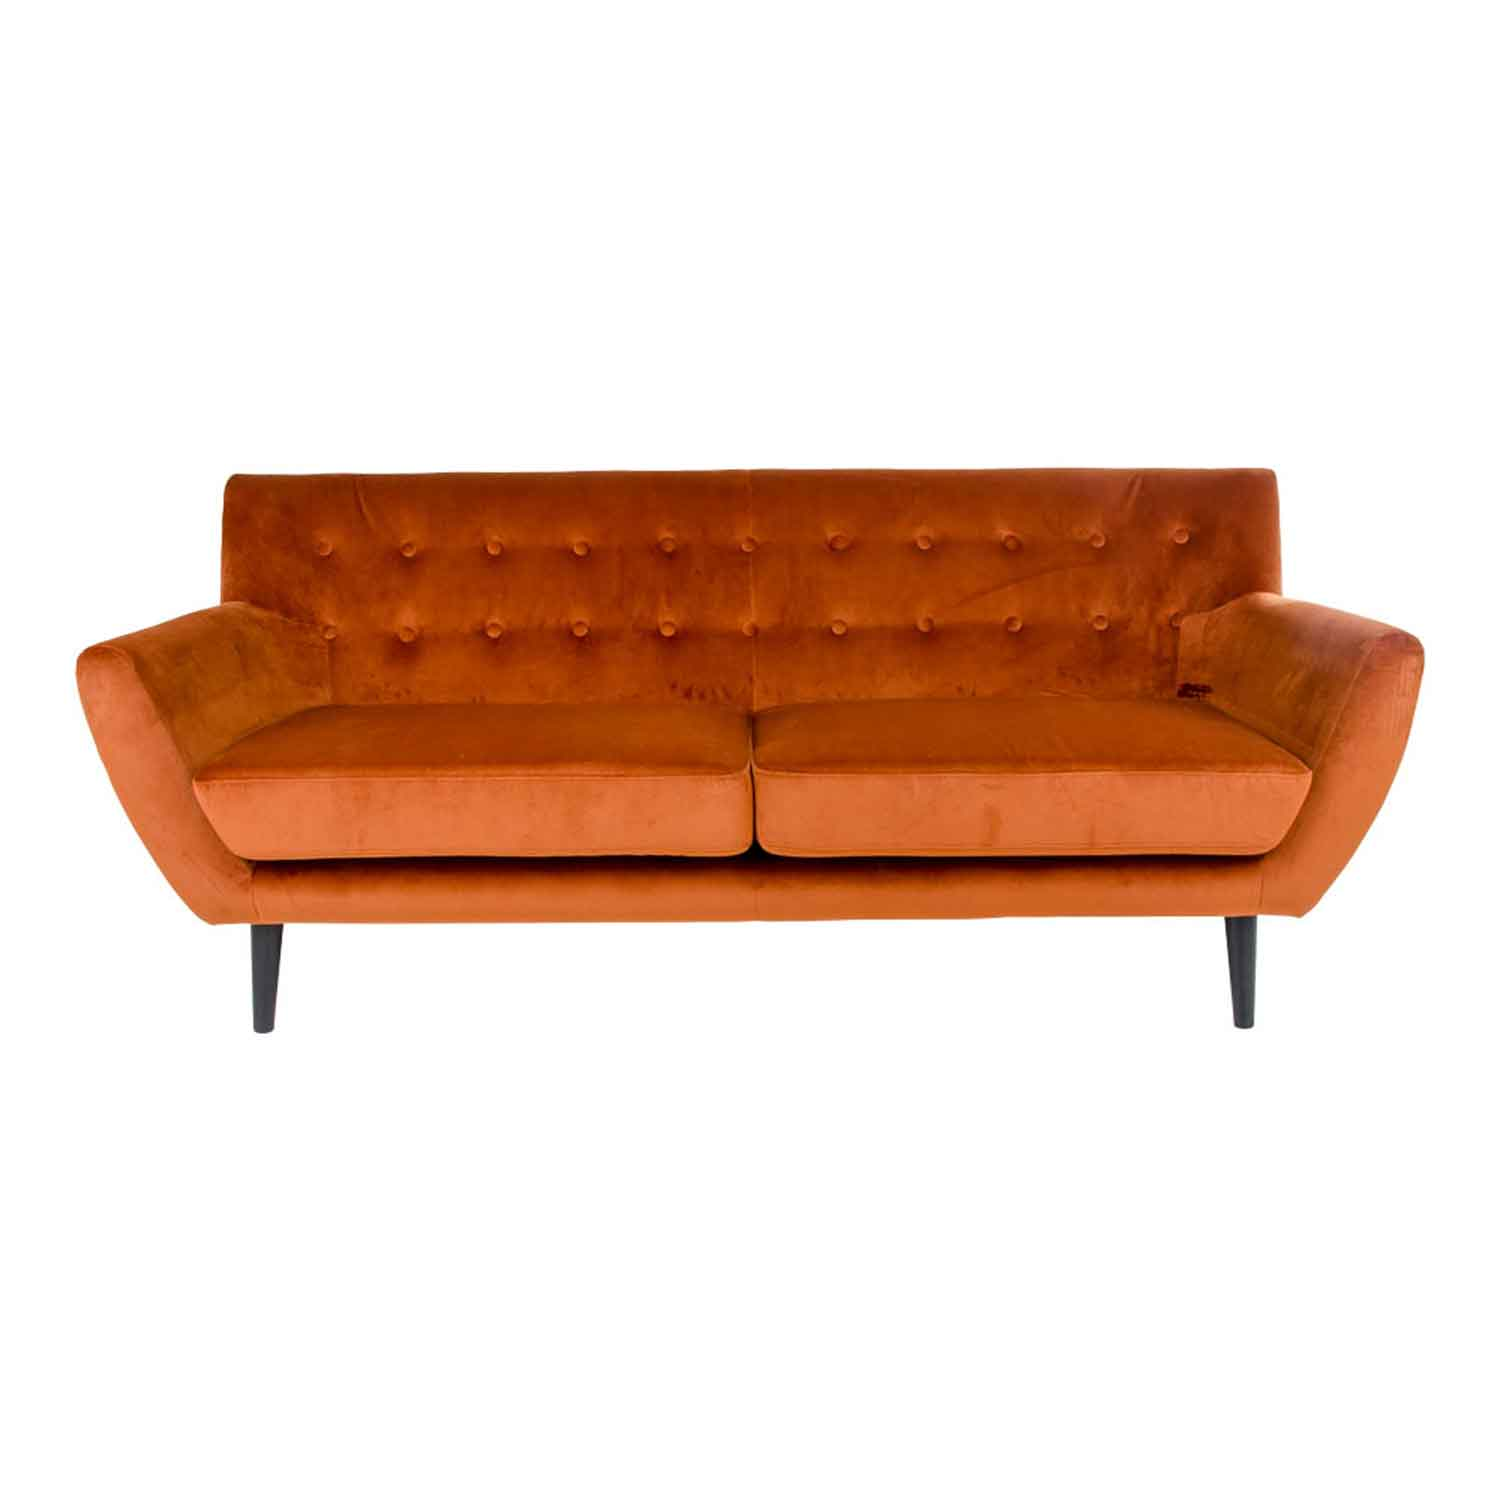 HOUSE NORDIC Monte 3-personers sofa - orange velour/træ, m. armlæn